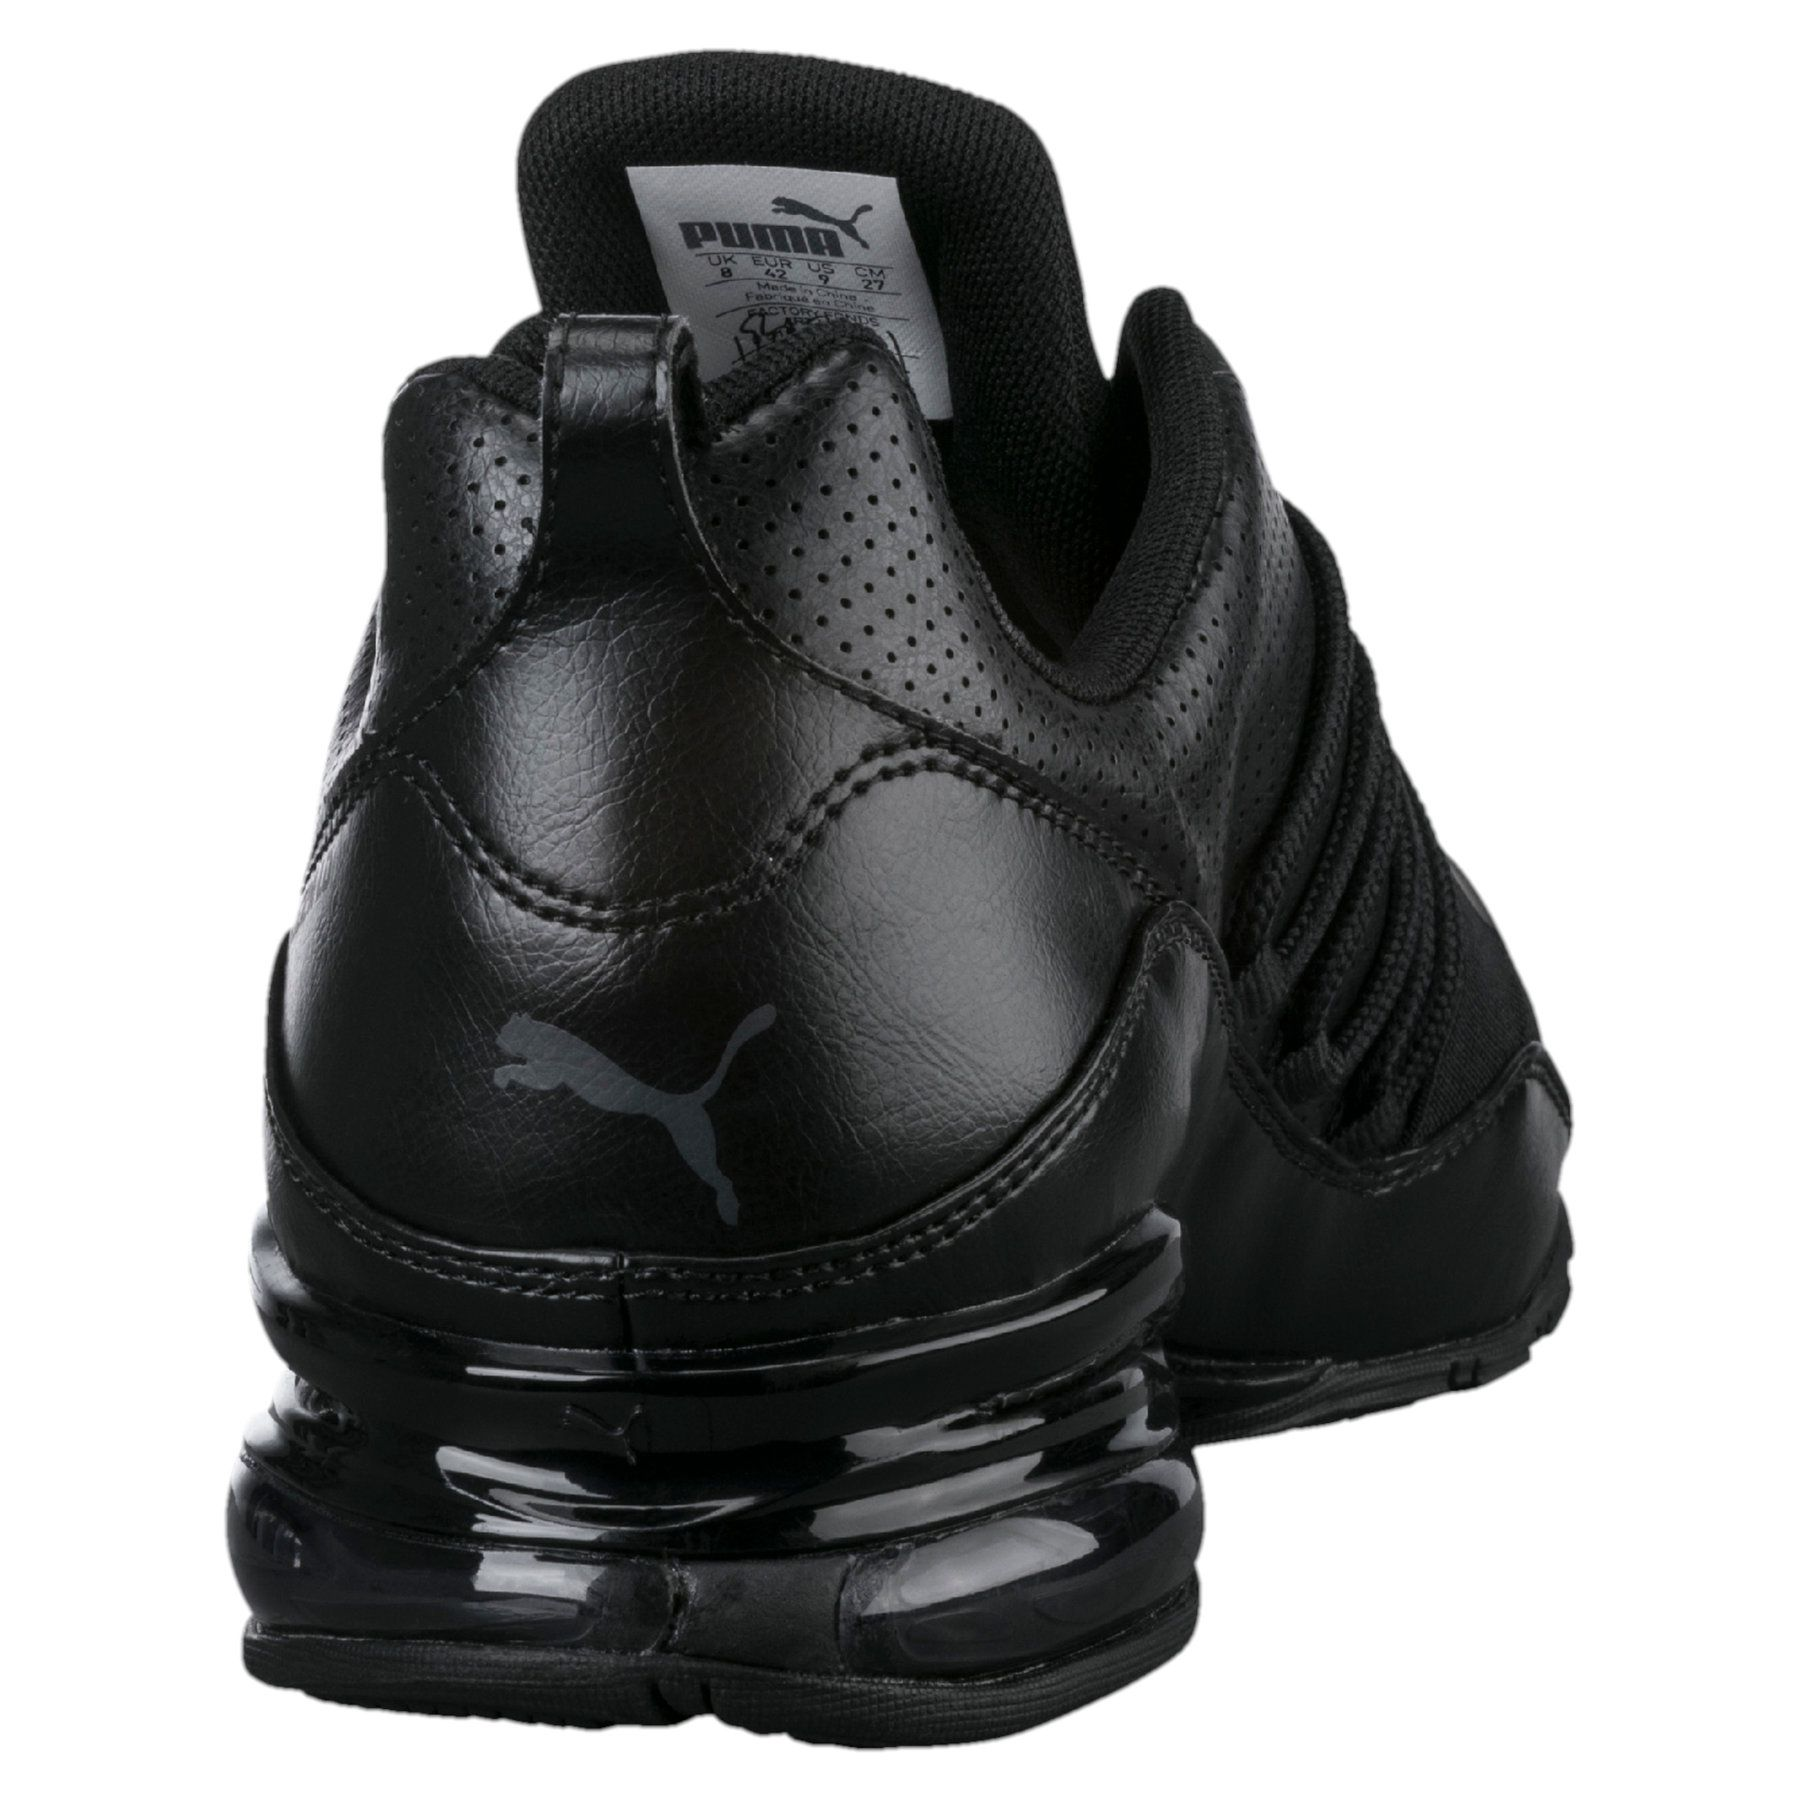 5d9c814f3173 Puma Cell Regulate Sl Sneakers Black Casual Shoes - Buy Puma Cell ...